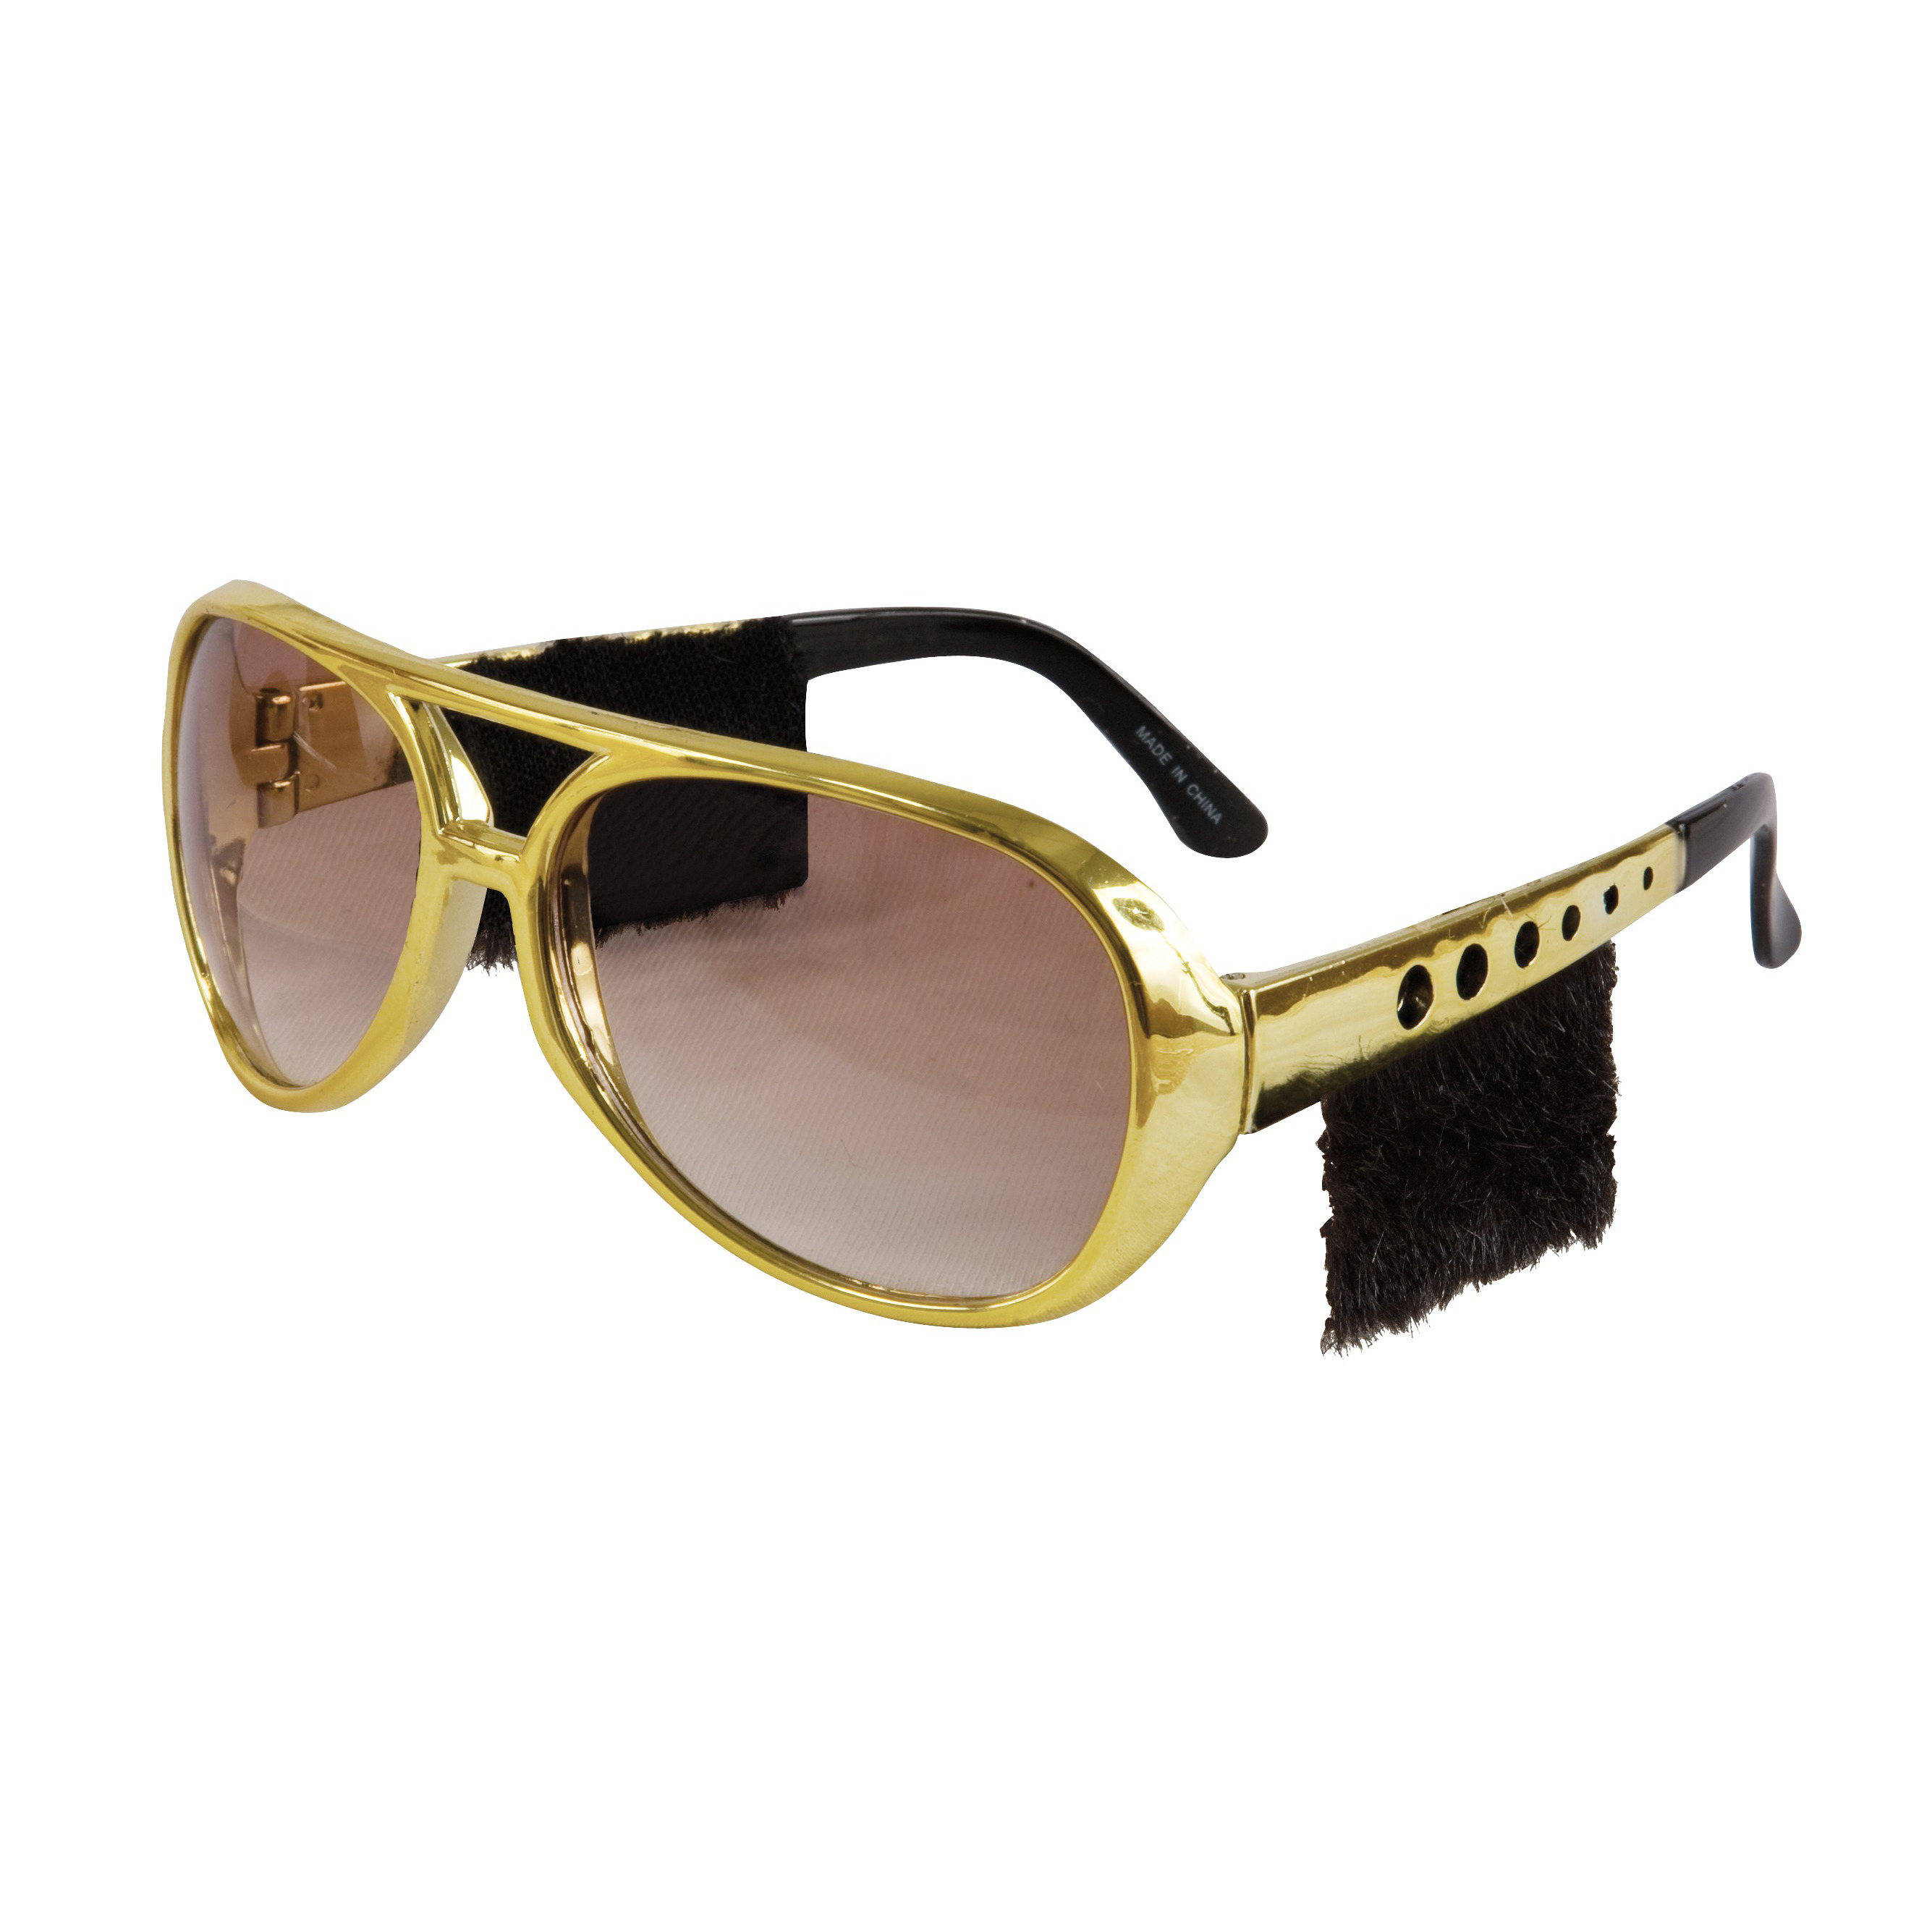 Elvis Sunglasses with Sideburns